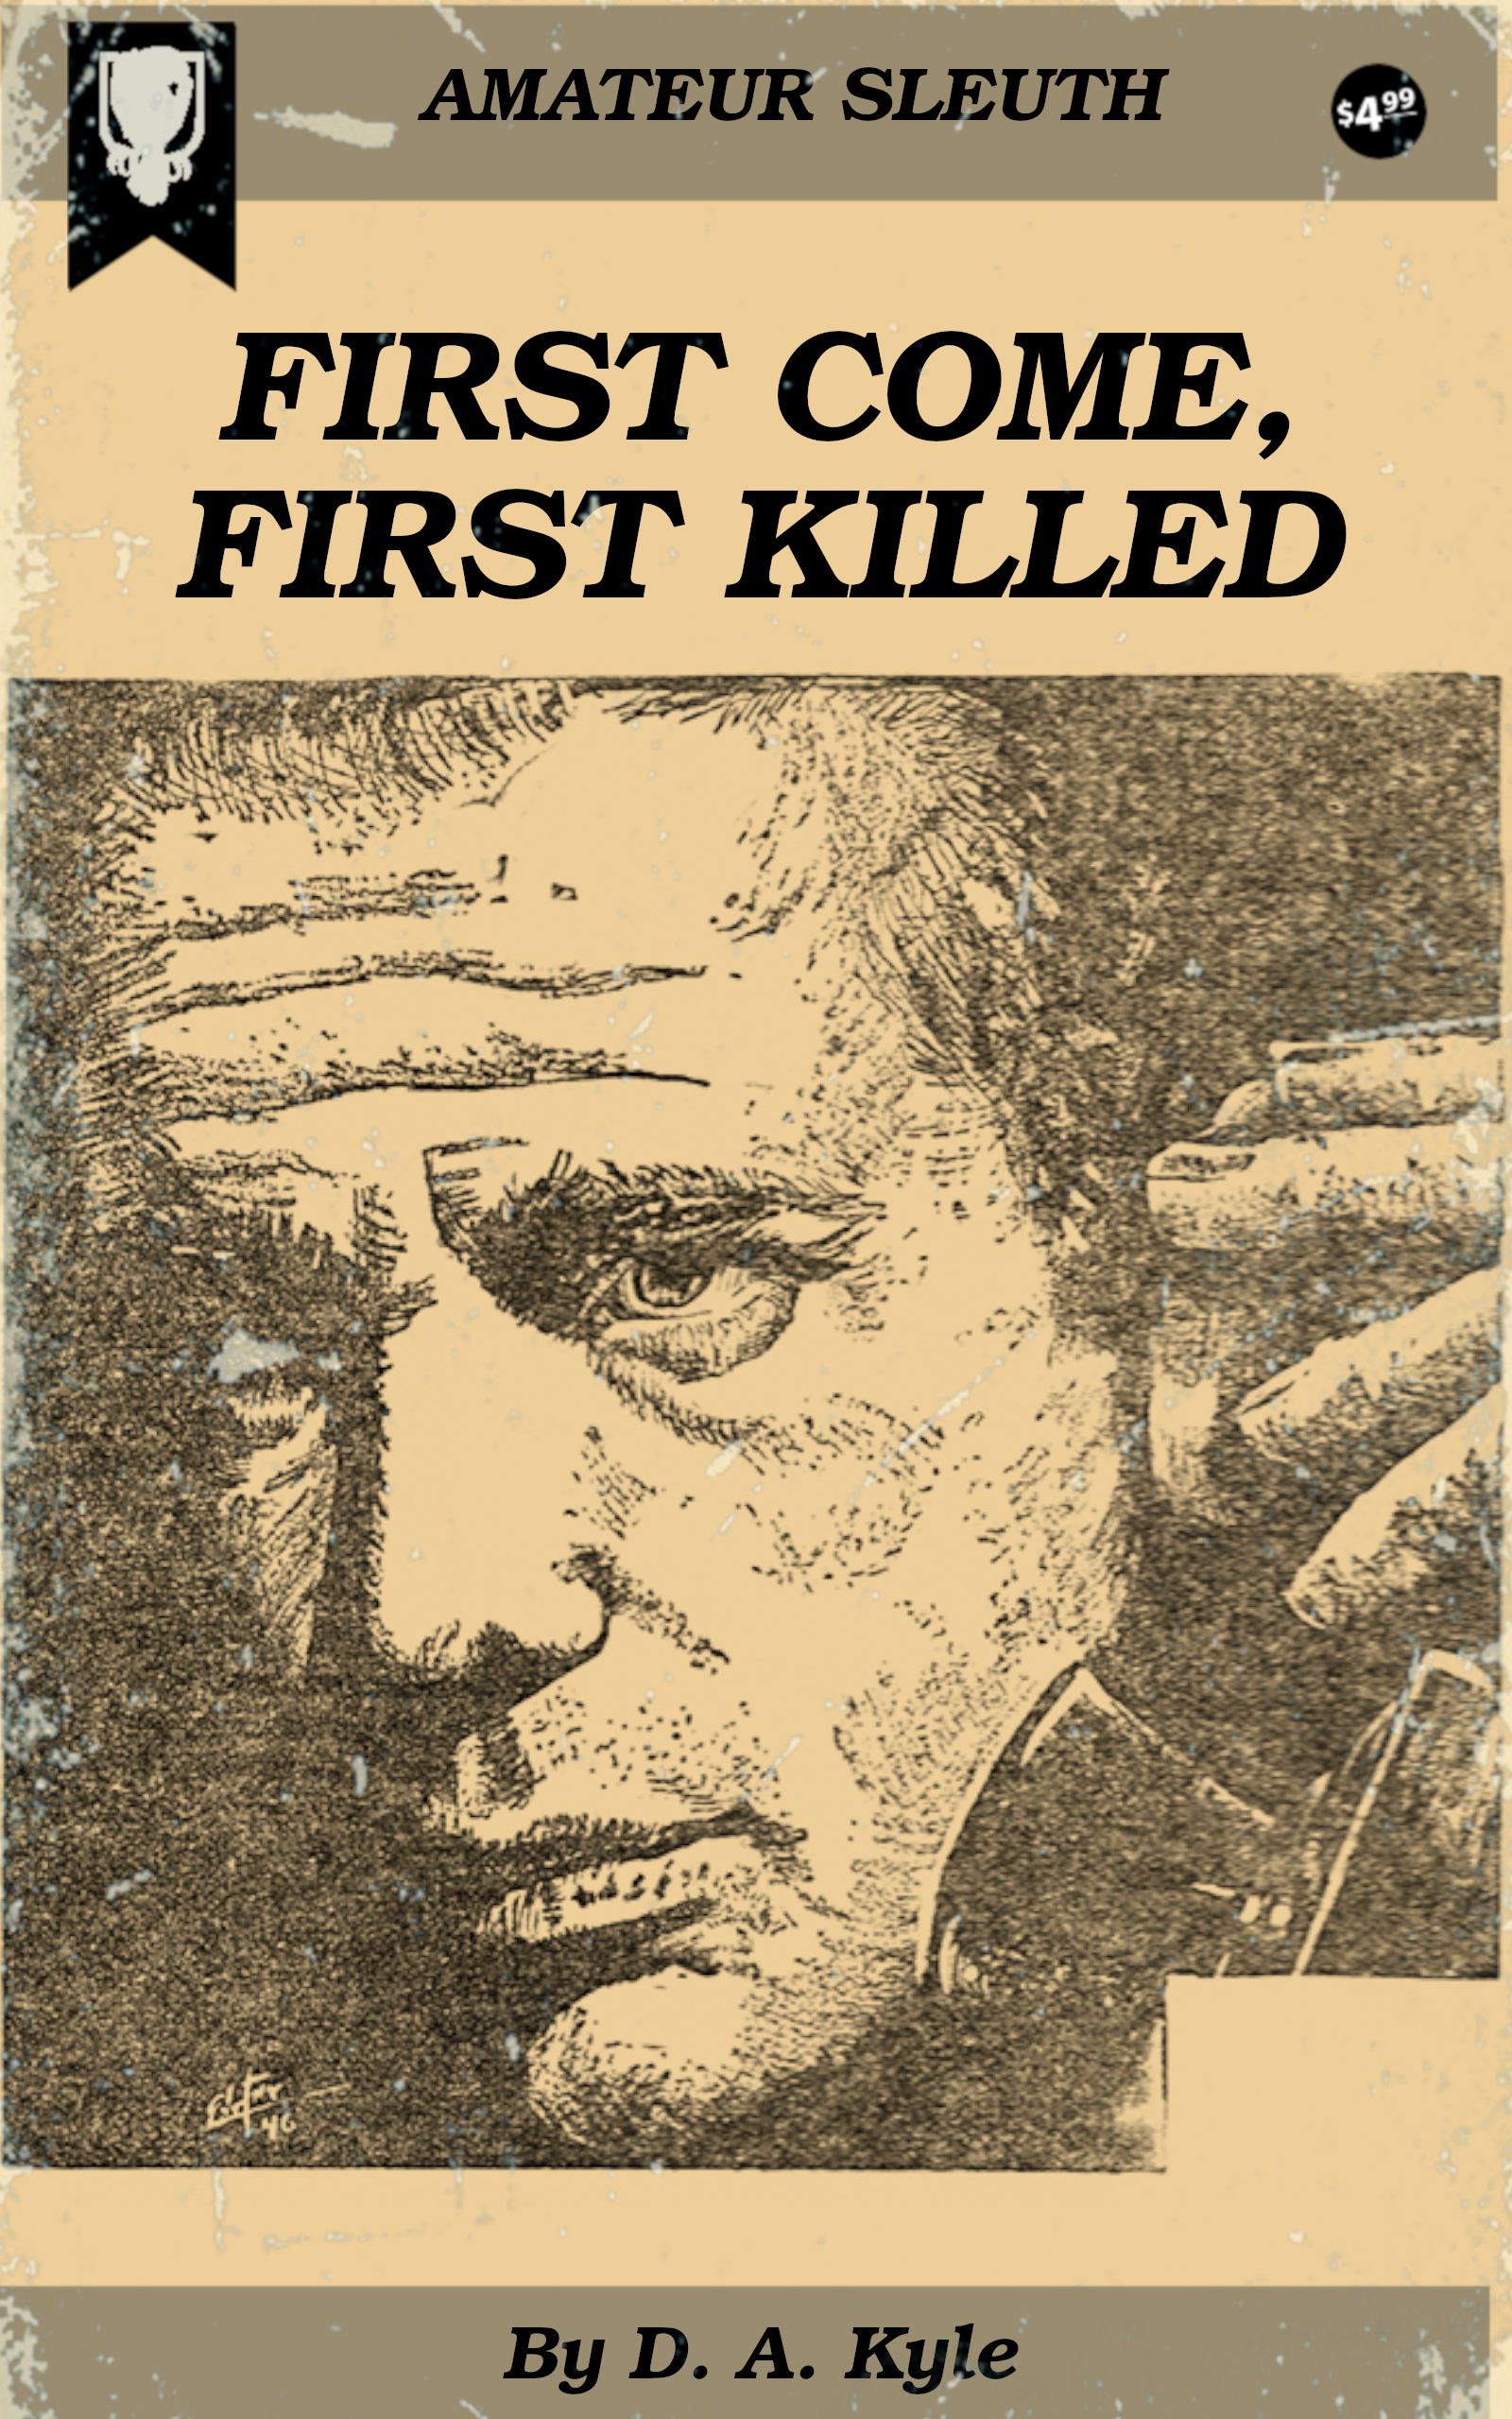 First Come, First Killed by D. A. Kyle